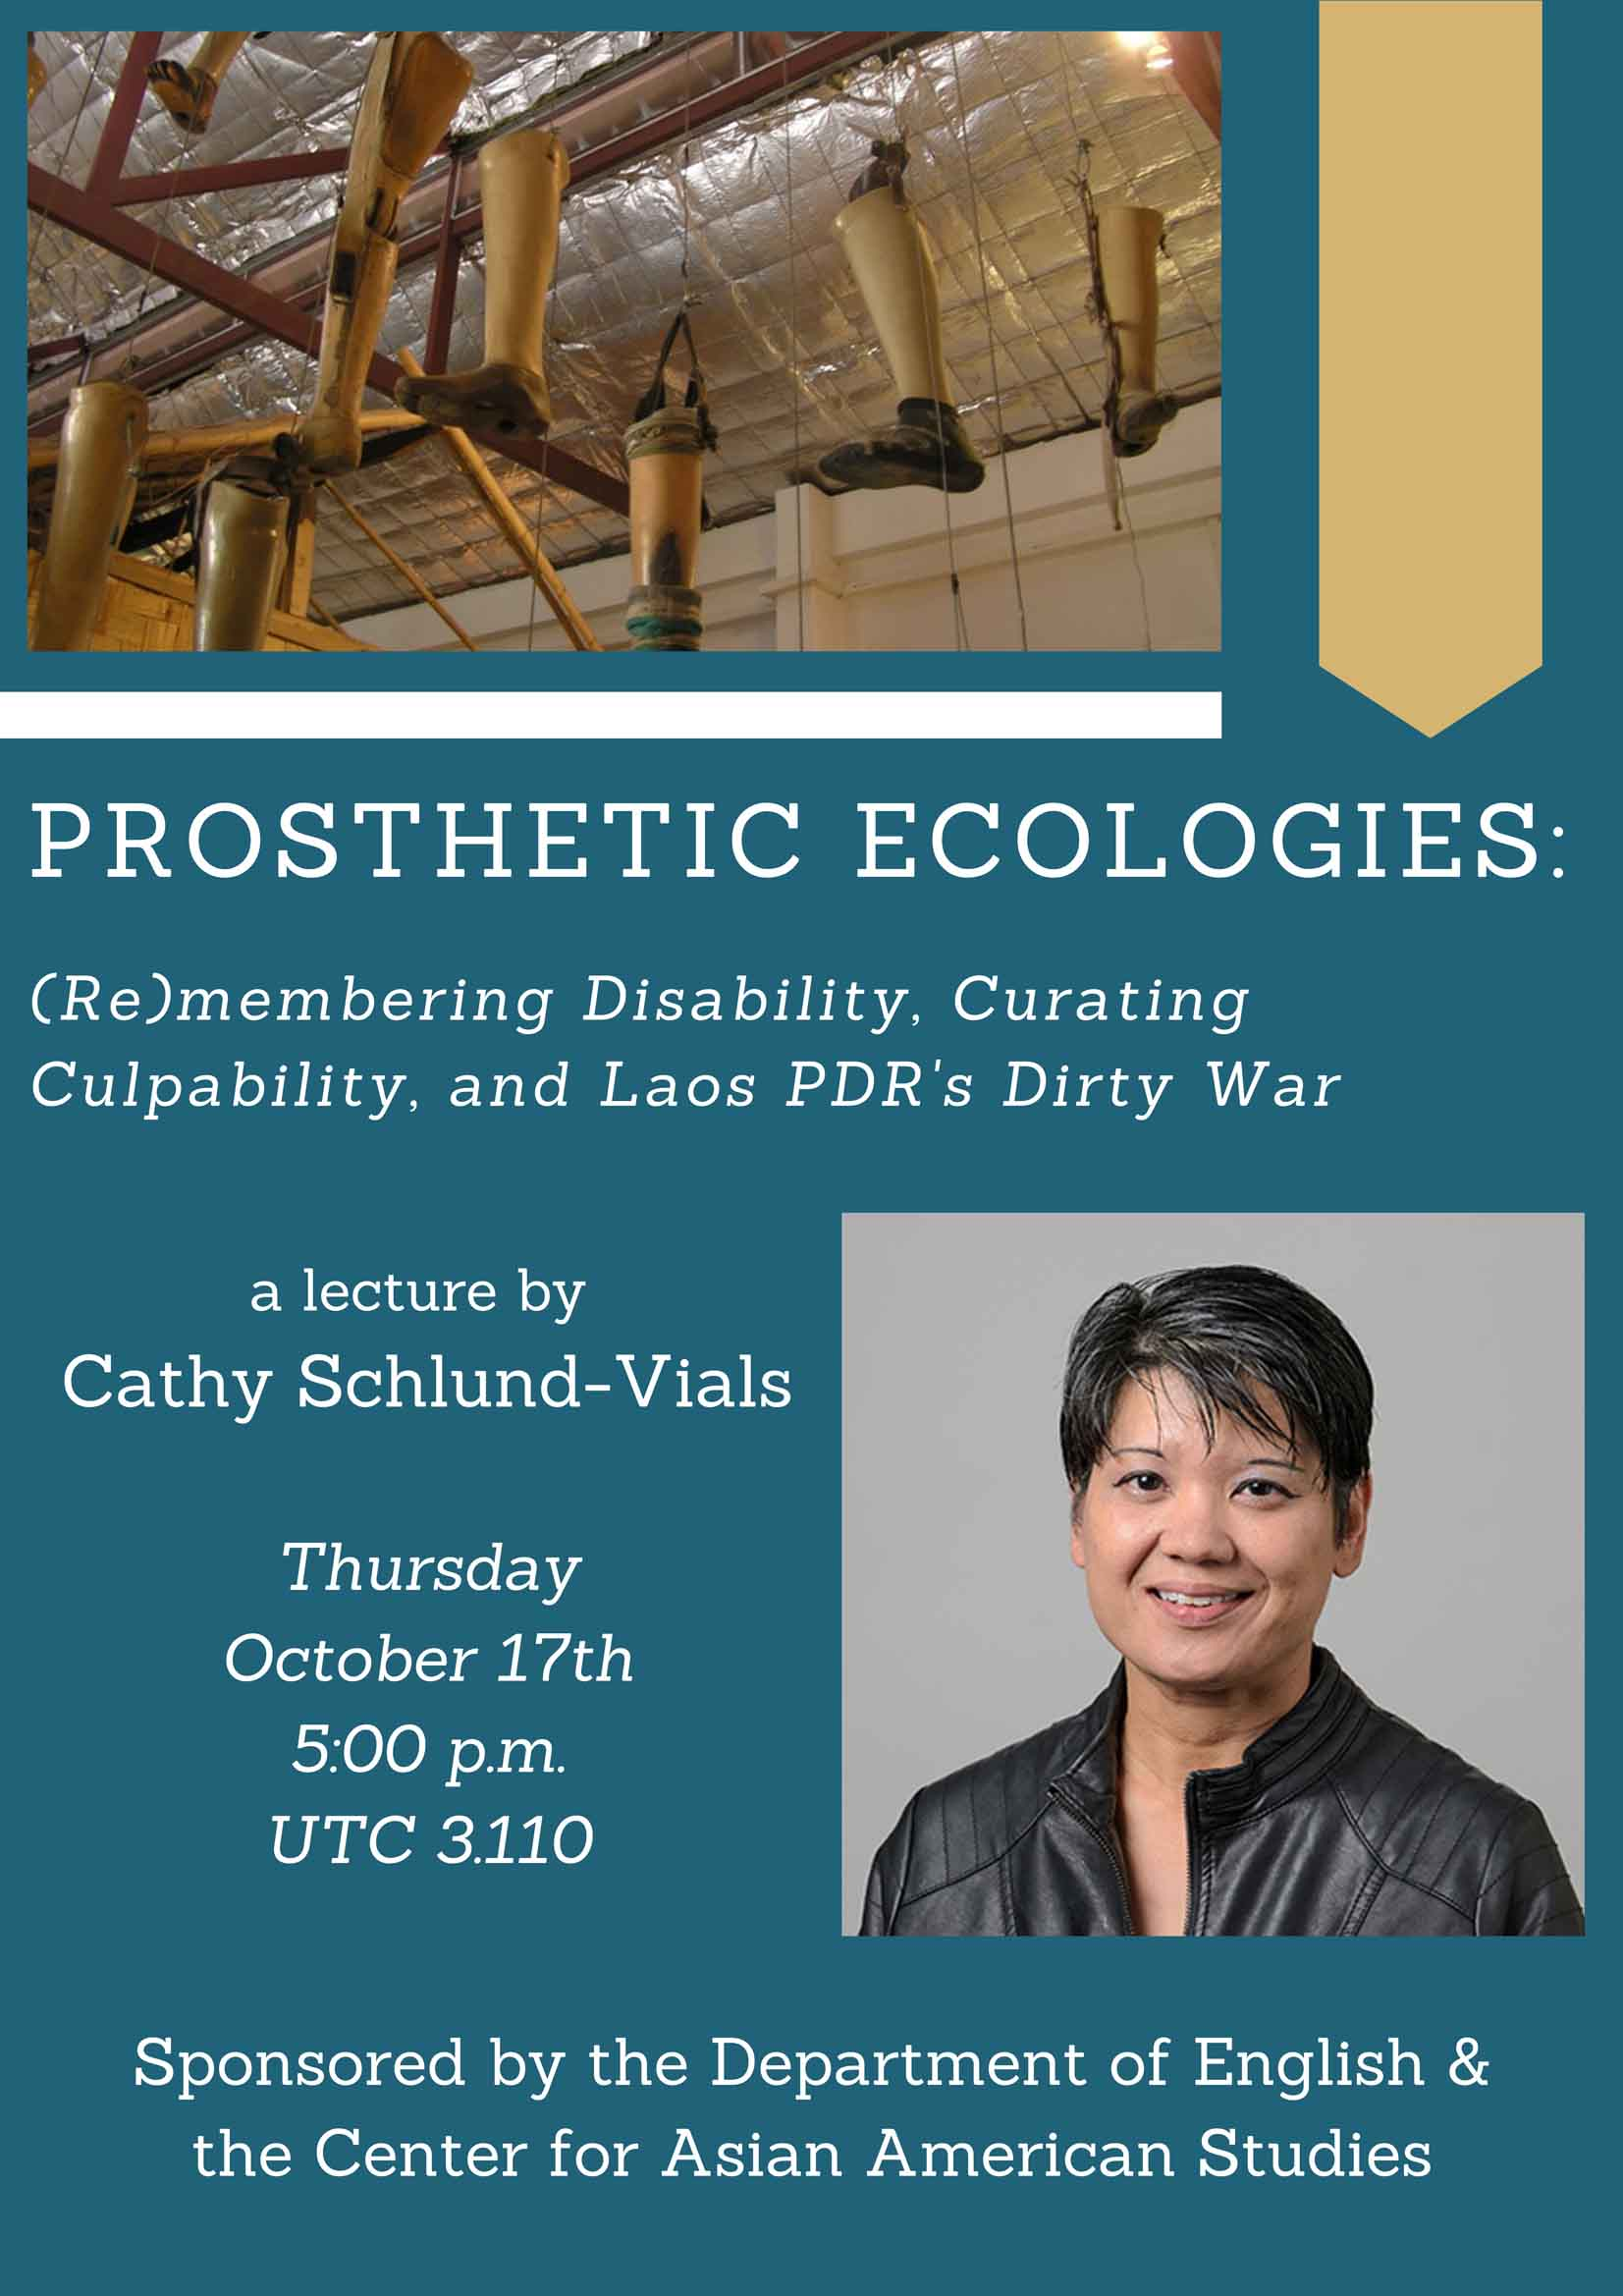 Prosthetic Ecologies: (Re)Membering Disability, Curating Culpability, and Laos PDR's Dirty War